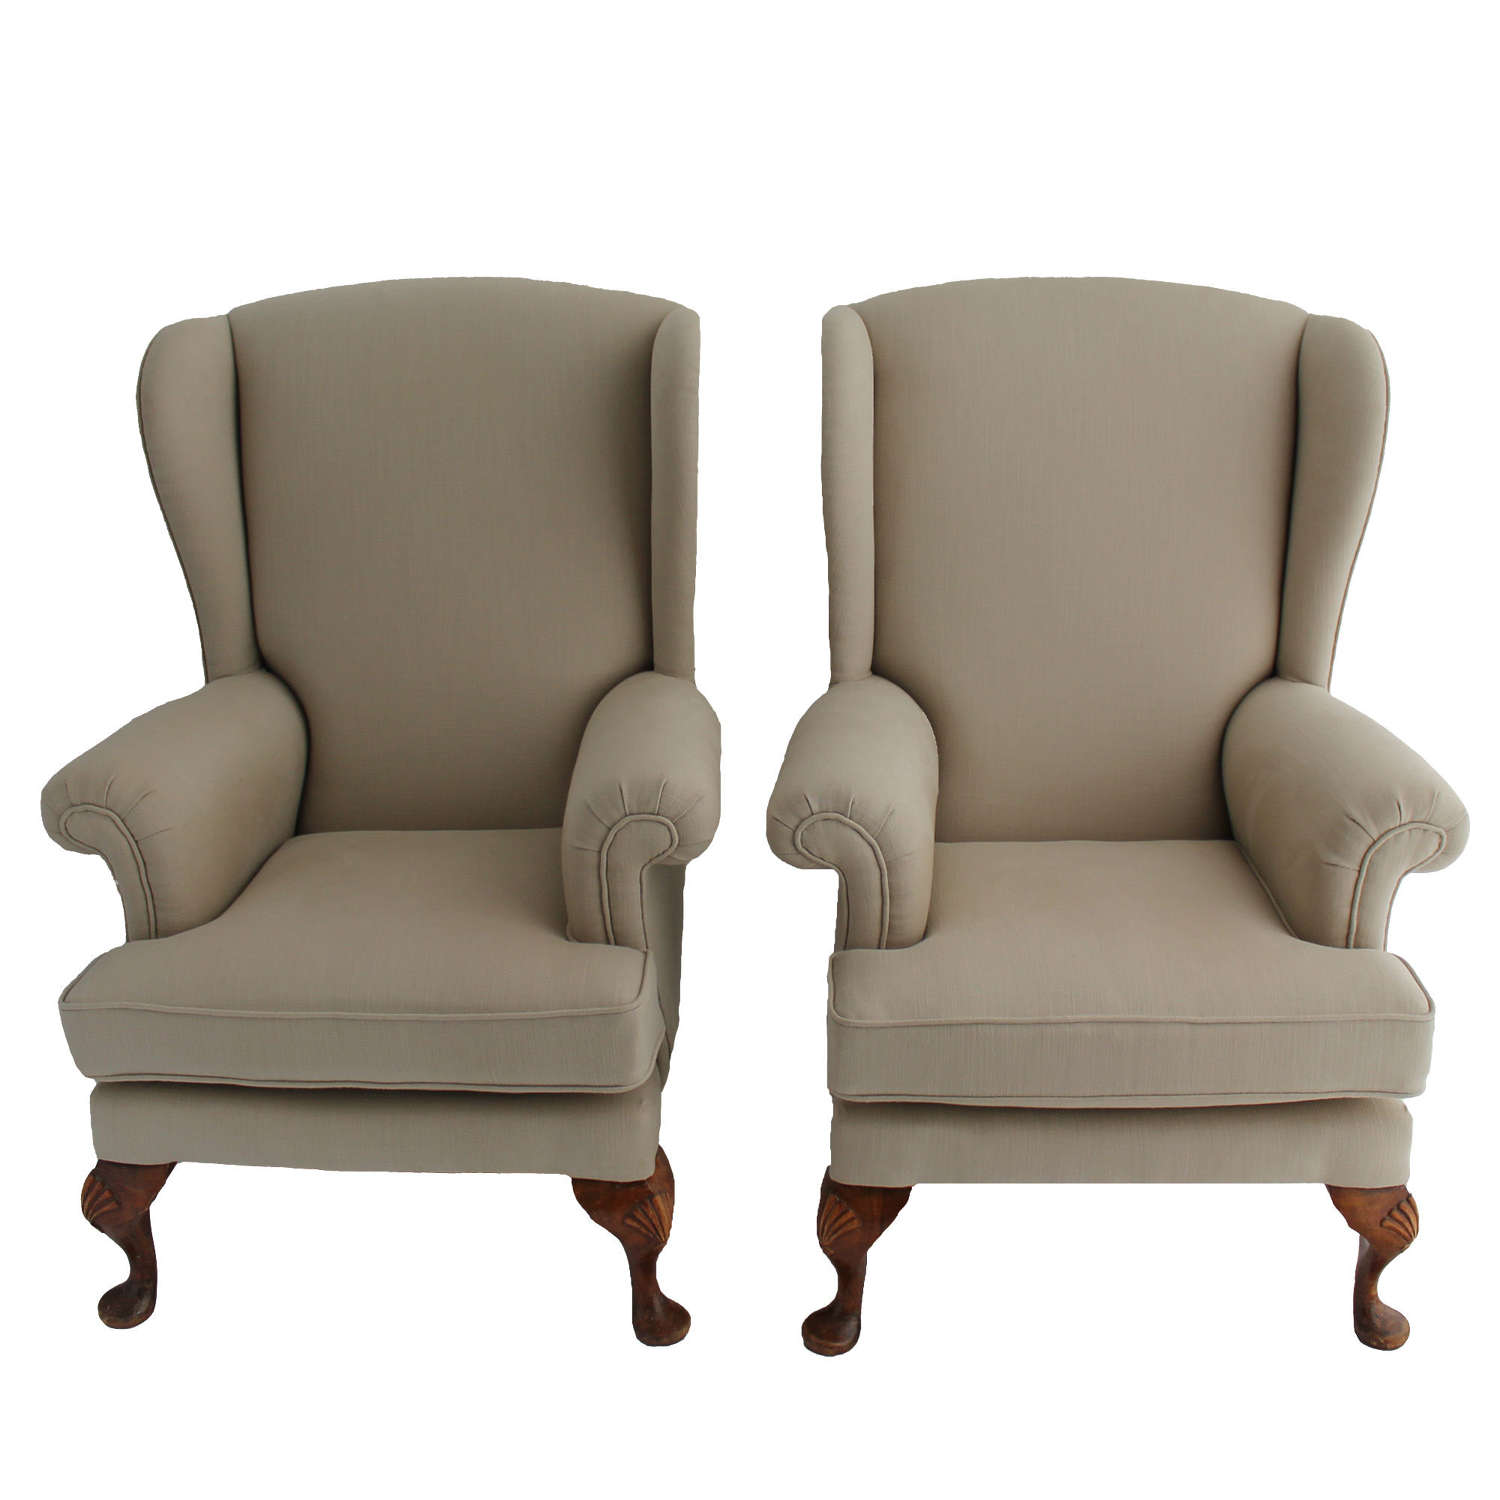 Pair of Parker Knoll Wingback Armchairs in Taupe Linen